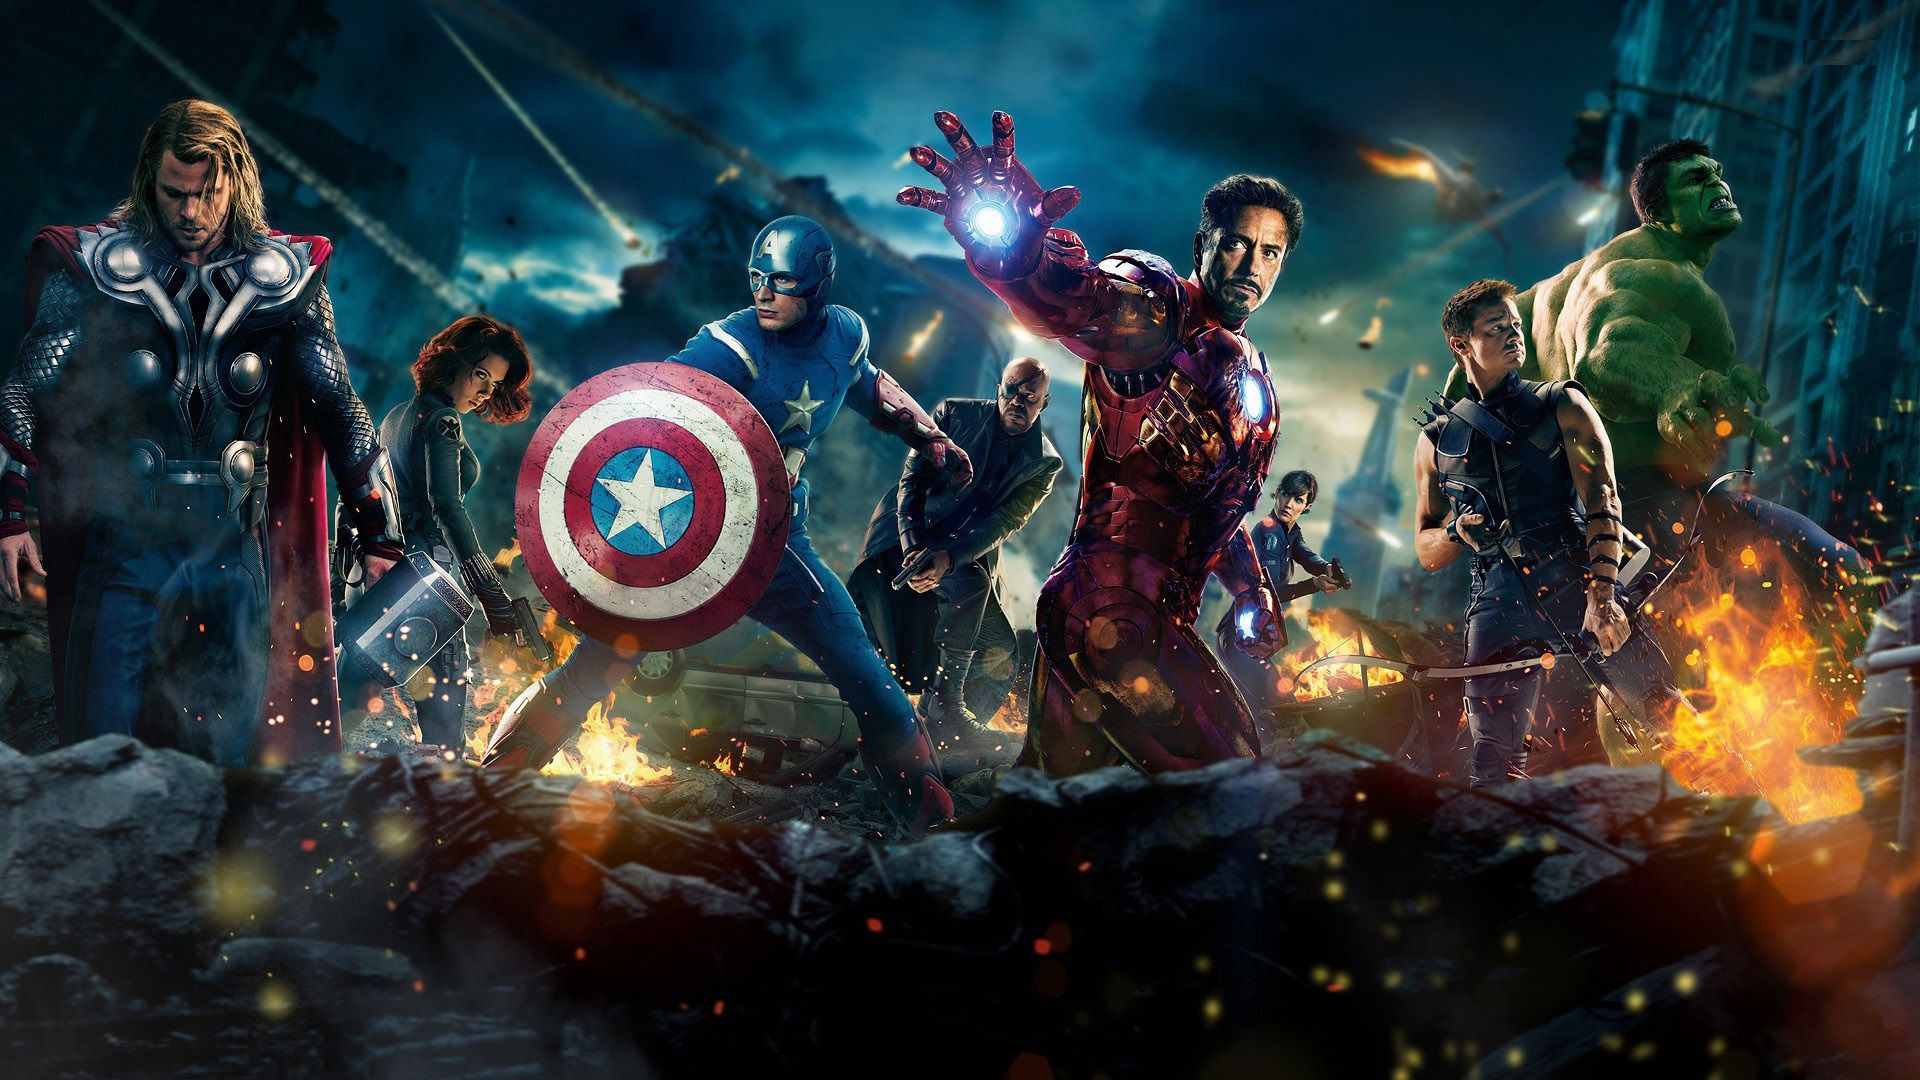 Desktop Avengers Laptop Wallpaper Hd